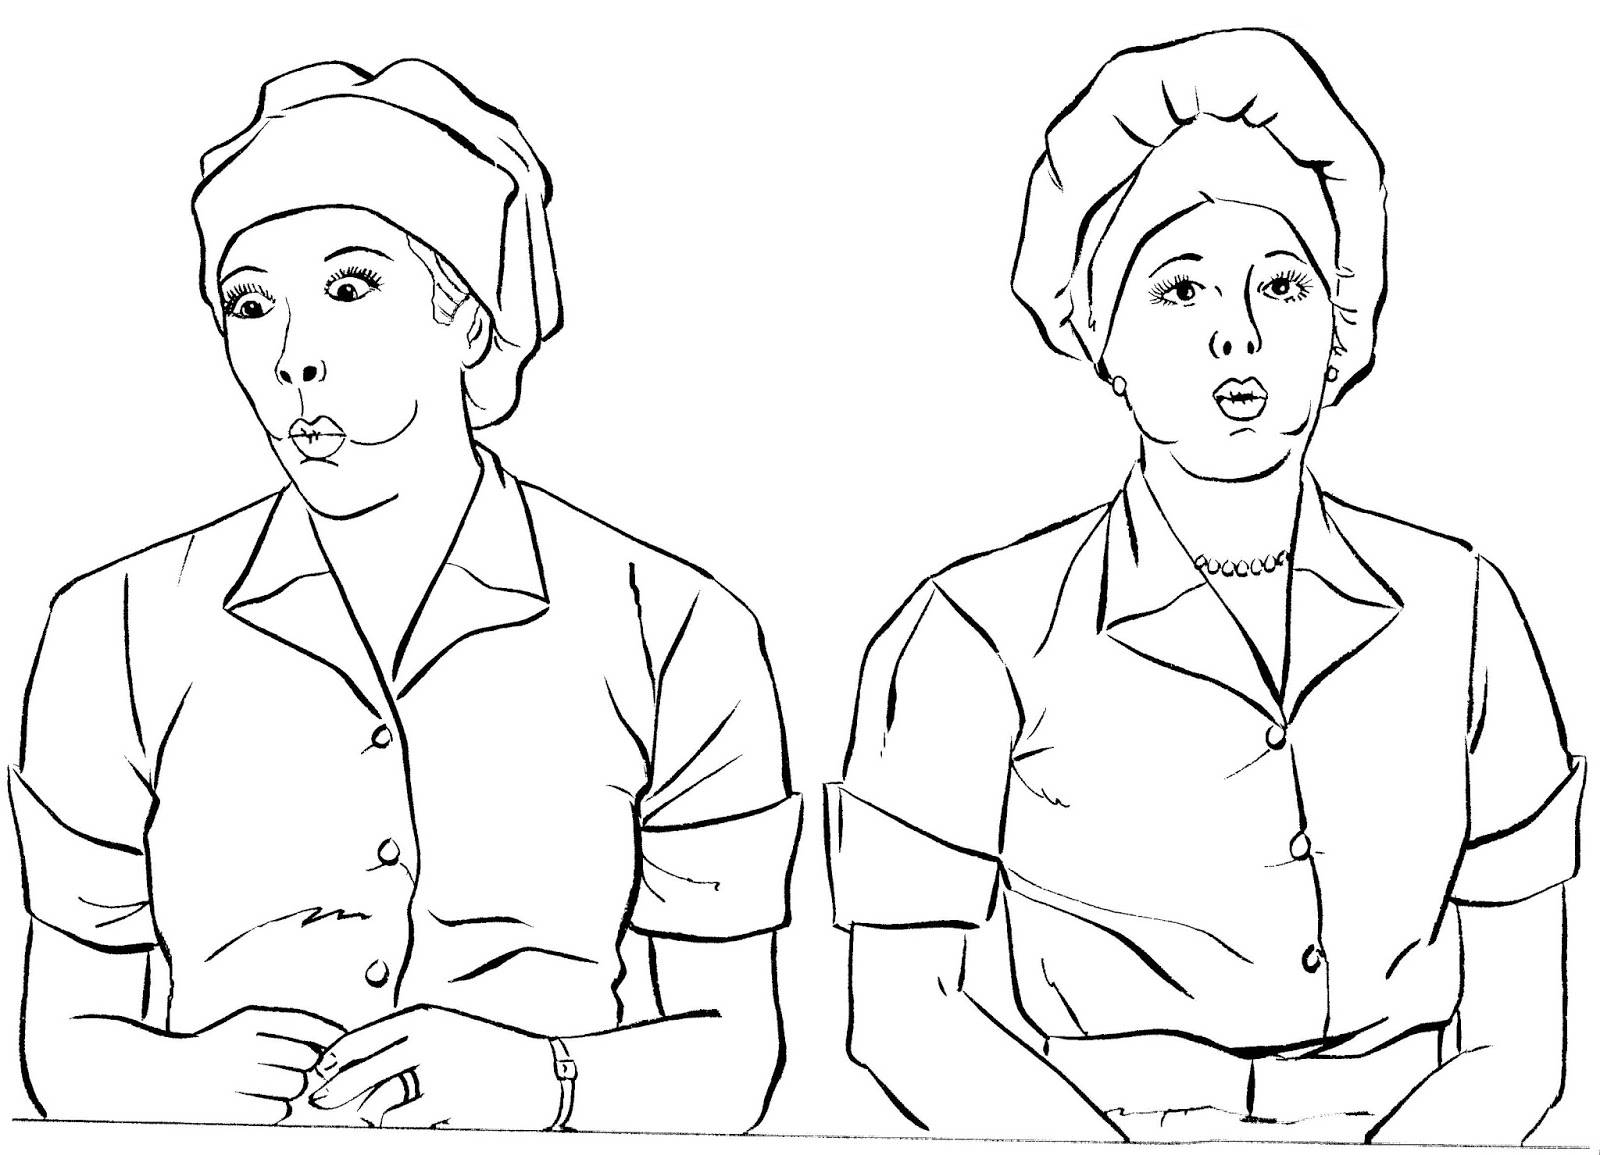 i love lucy coloring pages mostly paper dolls too march 2014